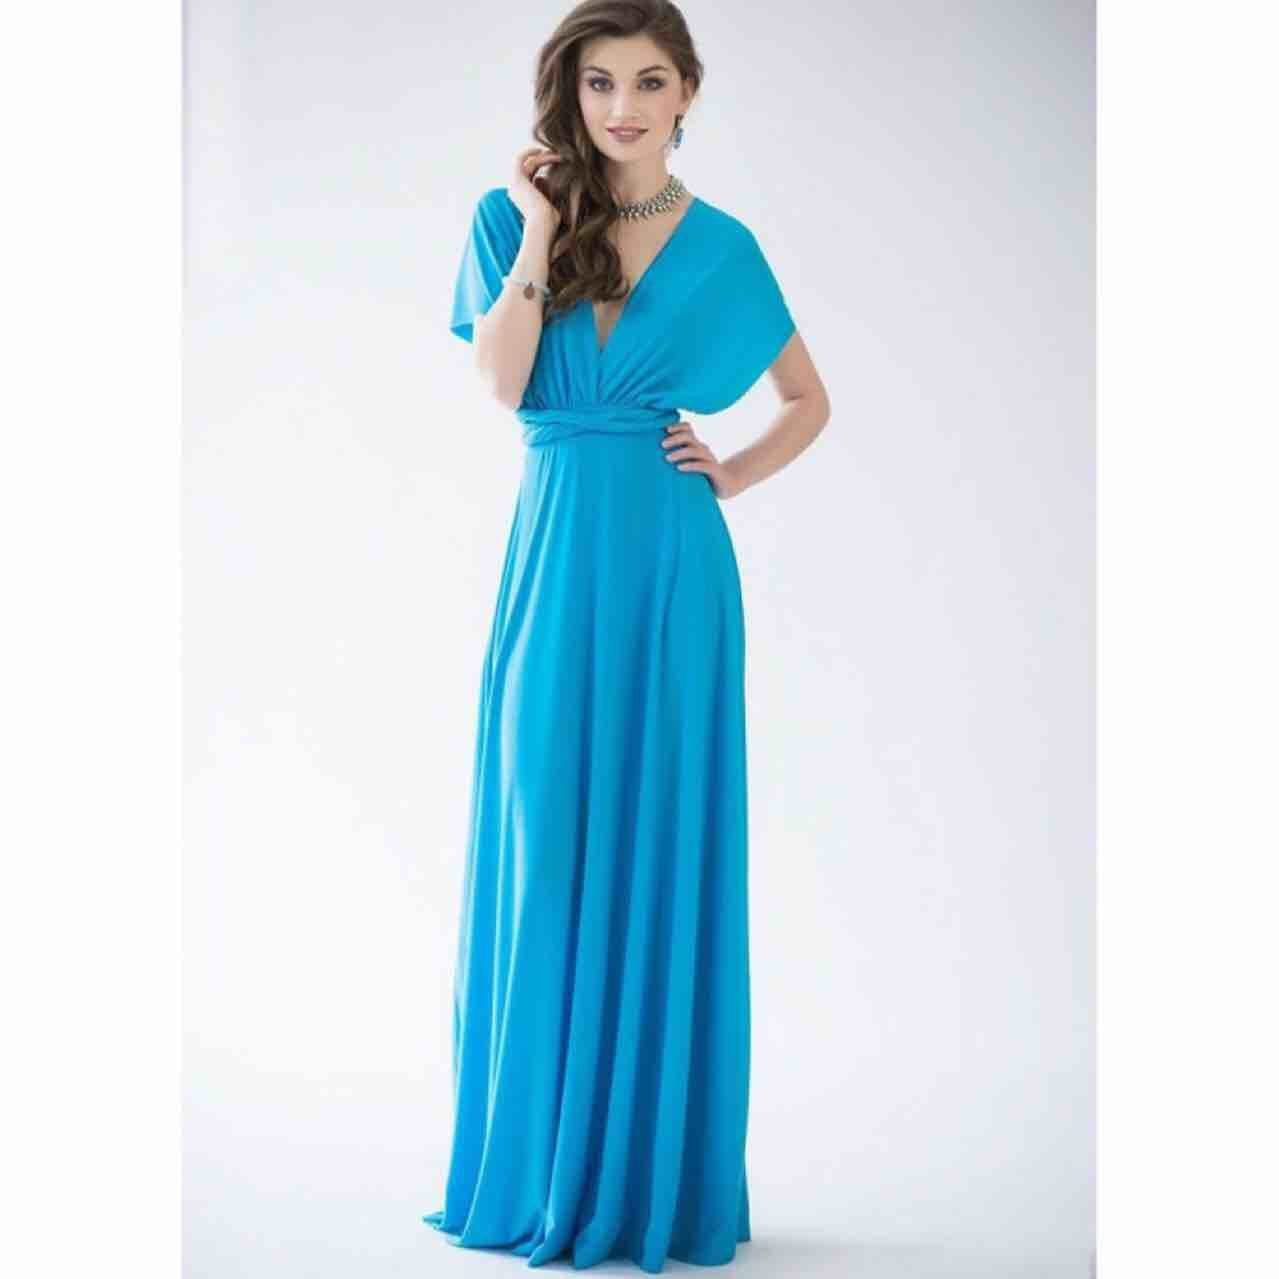 501c7cd9460 E-XCX Sexy Women s Bandage Bodycon Evening Gowns Maxi Long Dresses at  Amazon Women s Clothing store